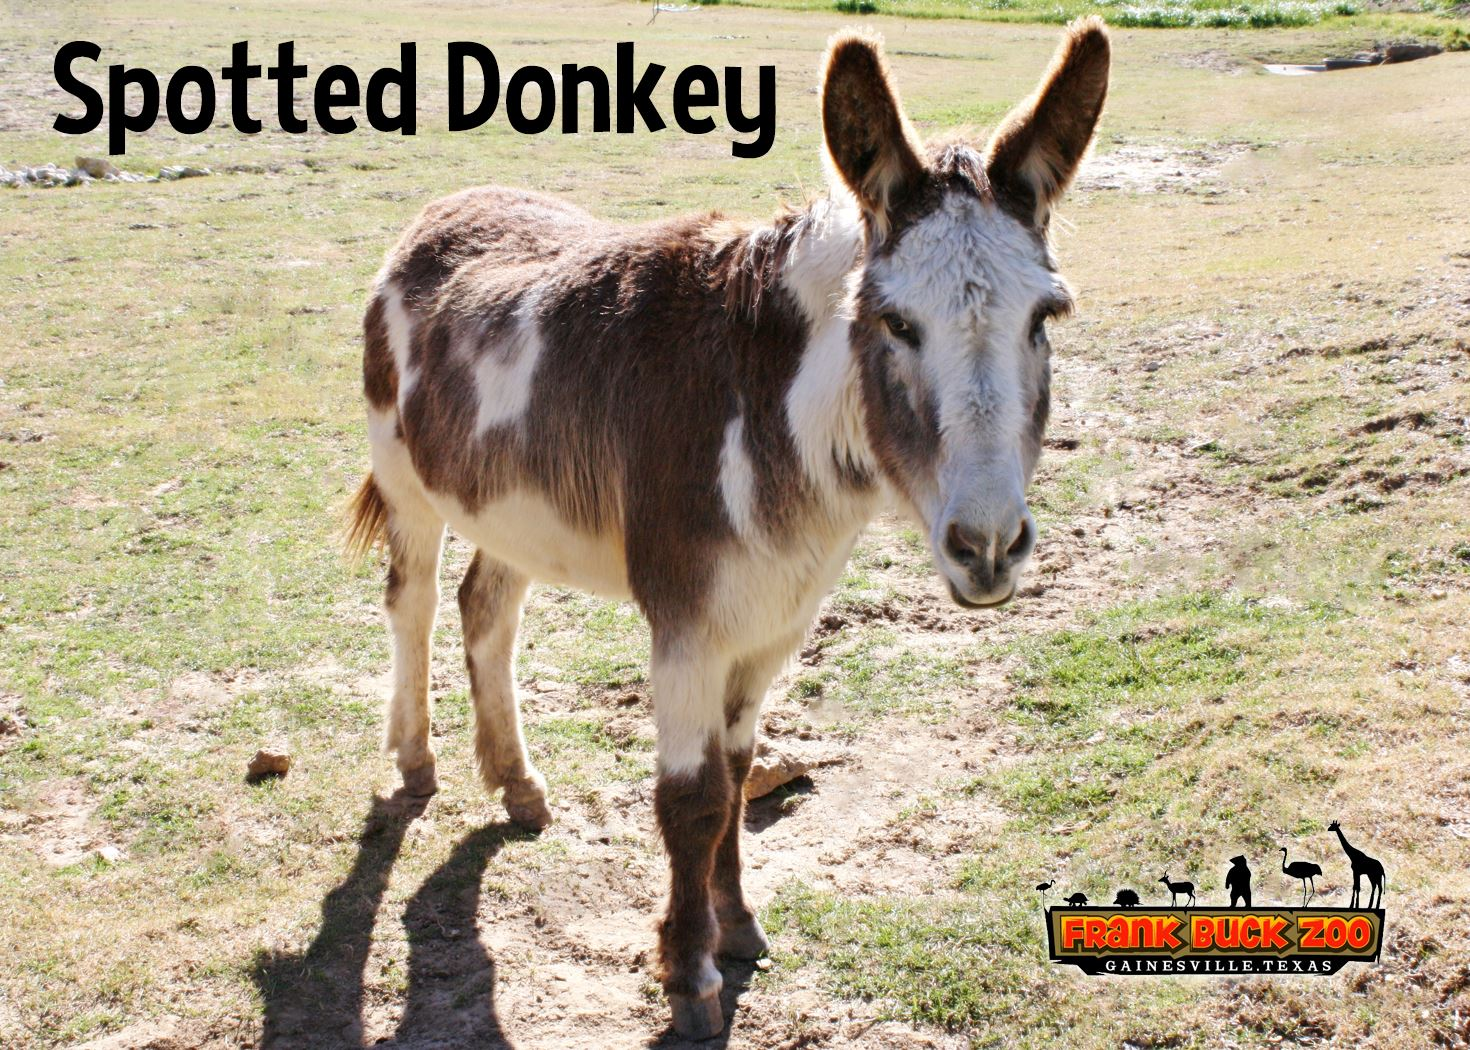 Spotted Donkey